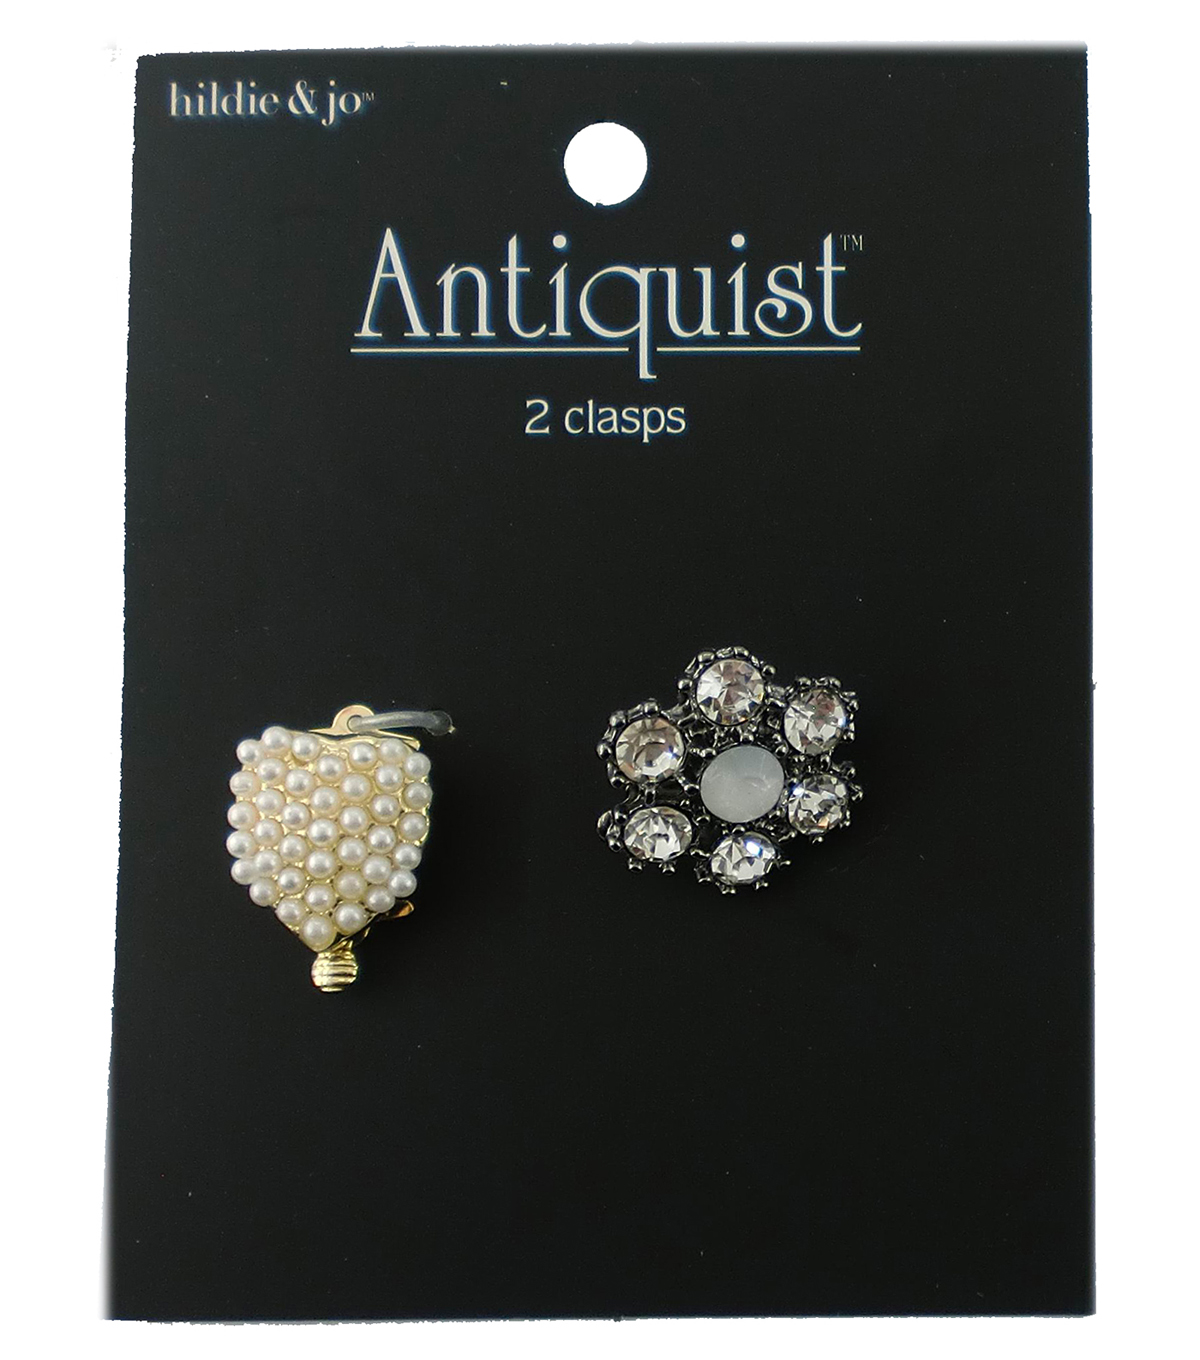 hildie & jo Antiquist Heart & Flower Clasps-Pearls & Crystals